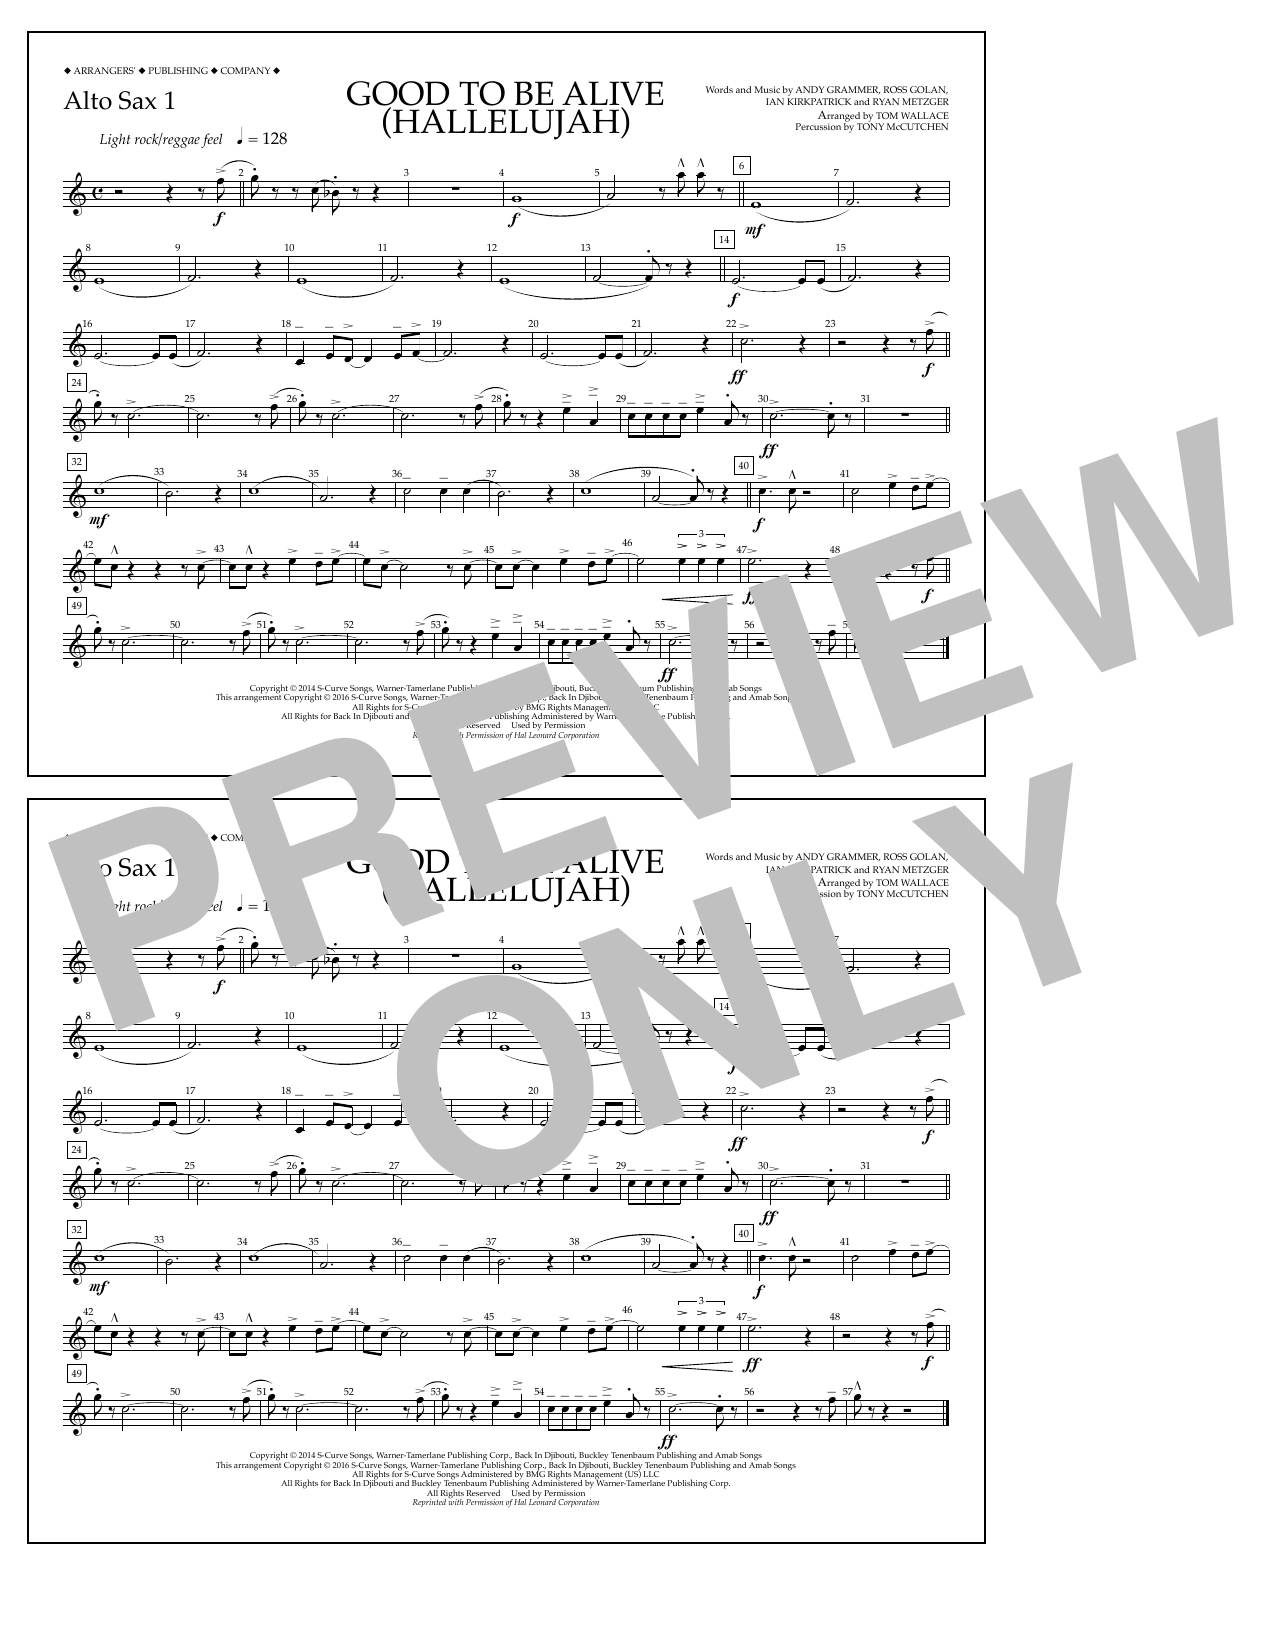 Good to Be Alive (Hallelujah) - Alto Sax 1 Sheet Music